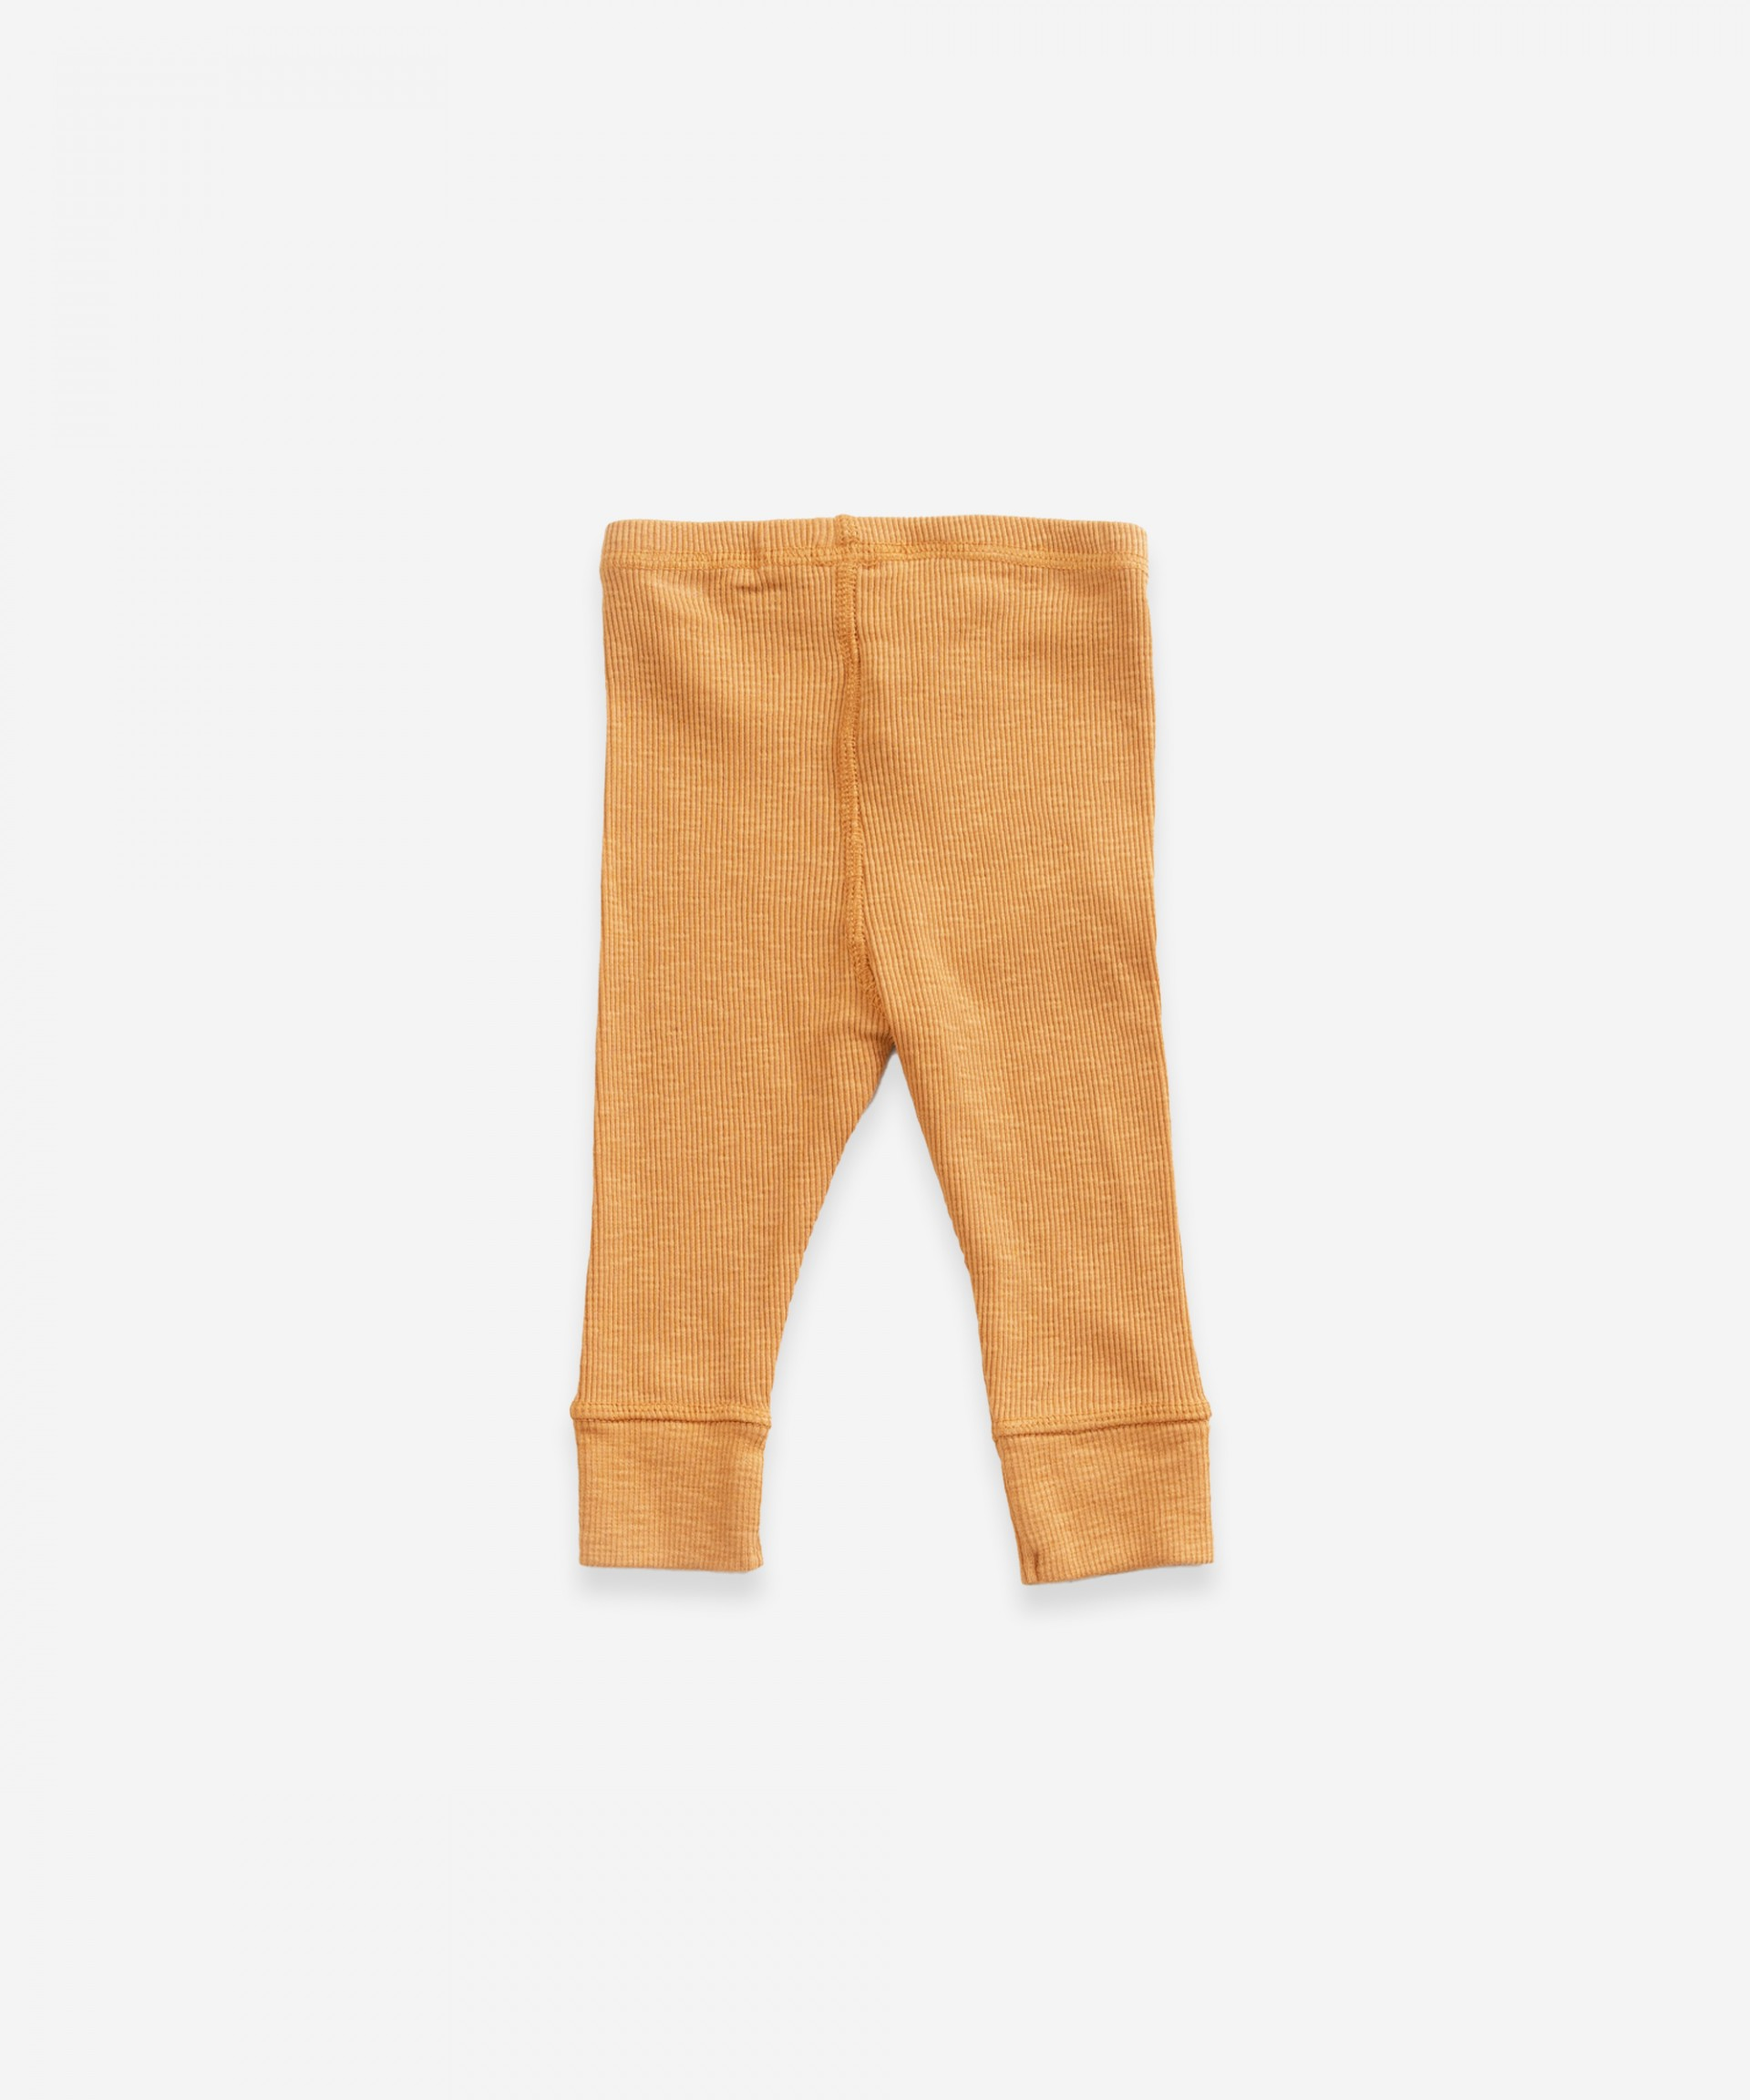 Leggings with elastic cuffs in organic cotton | Weaving